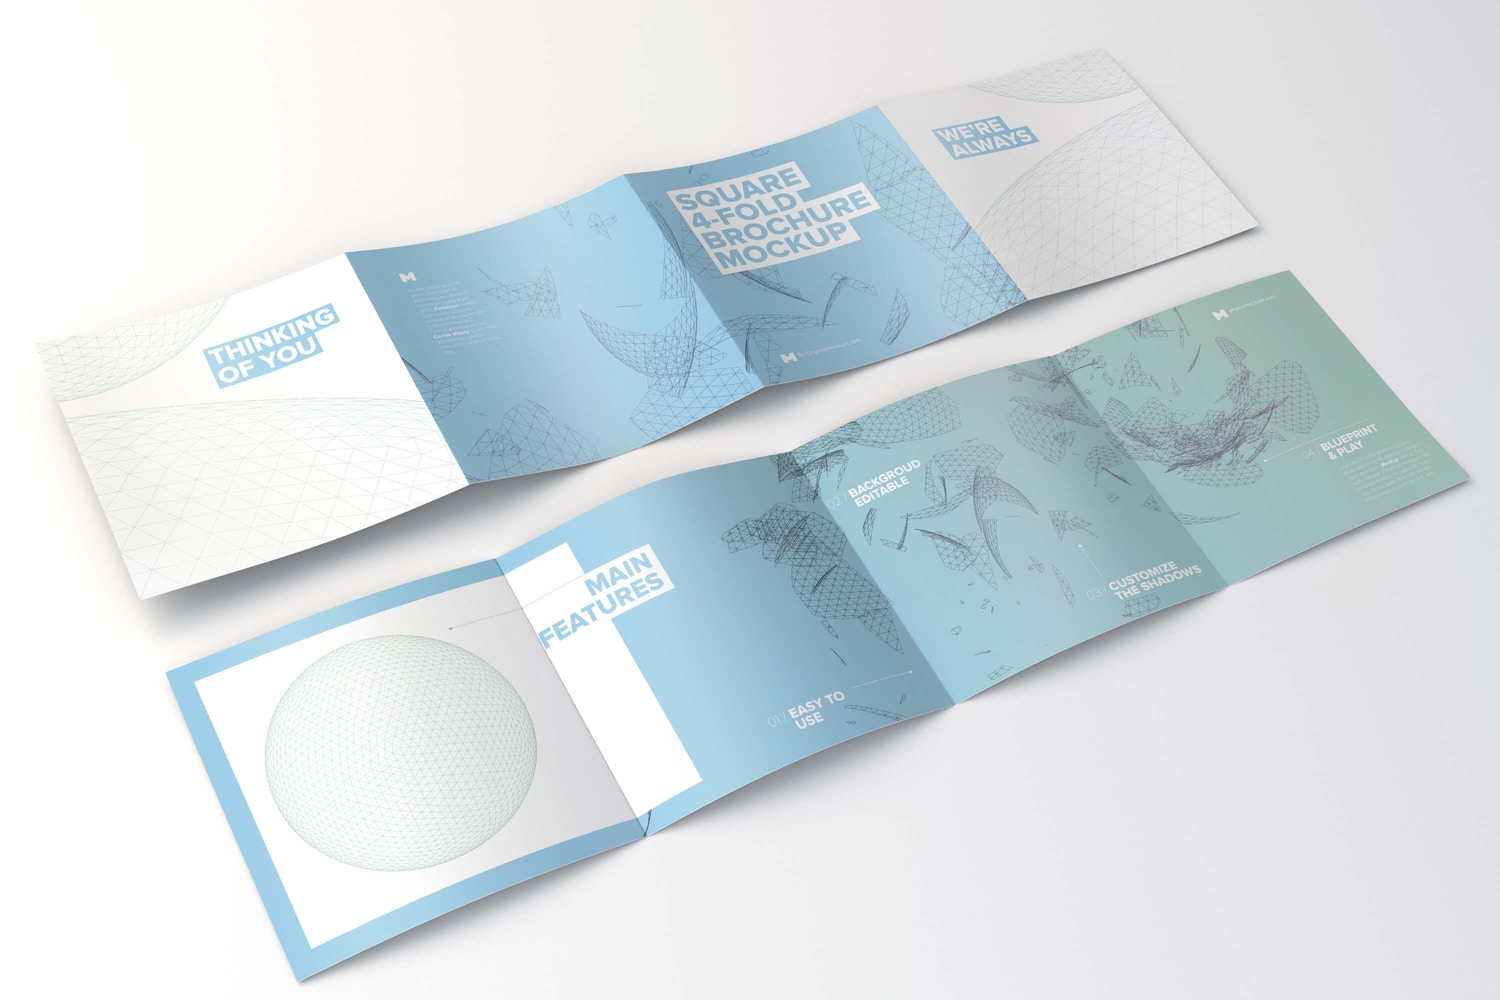 Spread Square 4-Fold Brochure Outside and Inside Mockup 01 por Original Mockups en Original Mockups